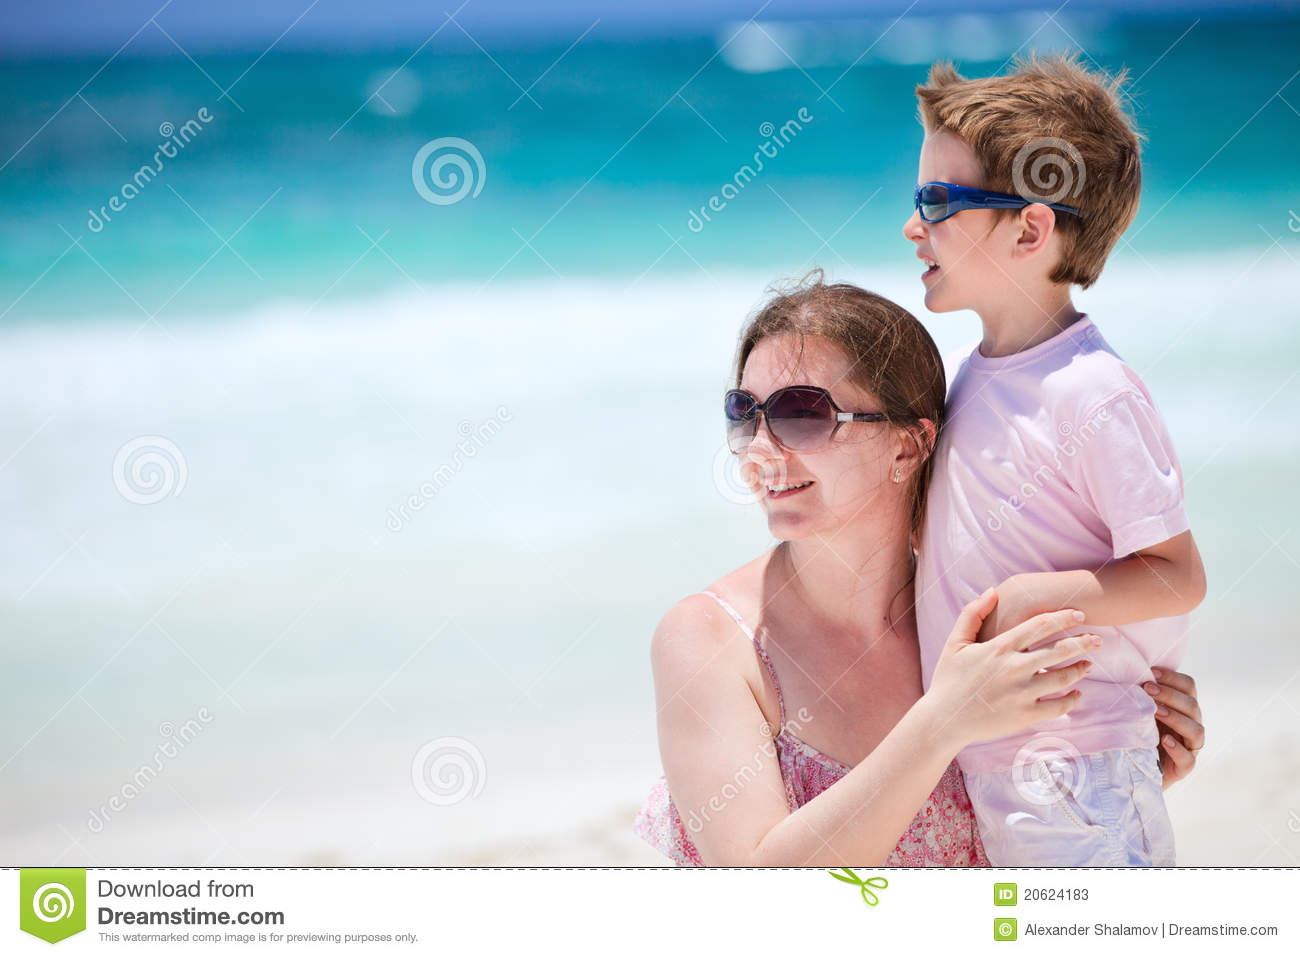 Mom and son on vacation